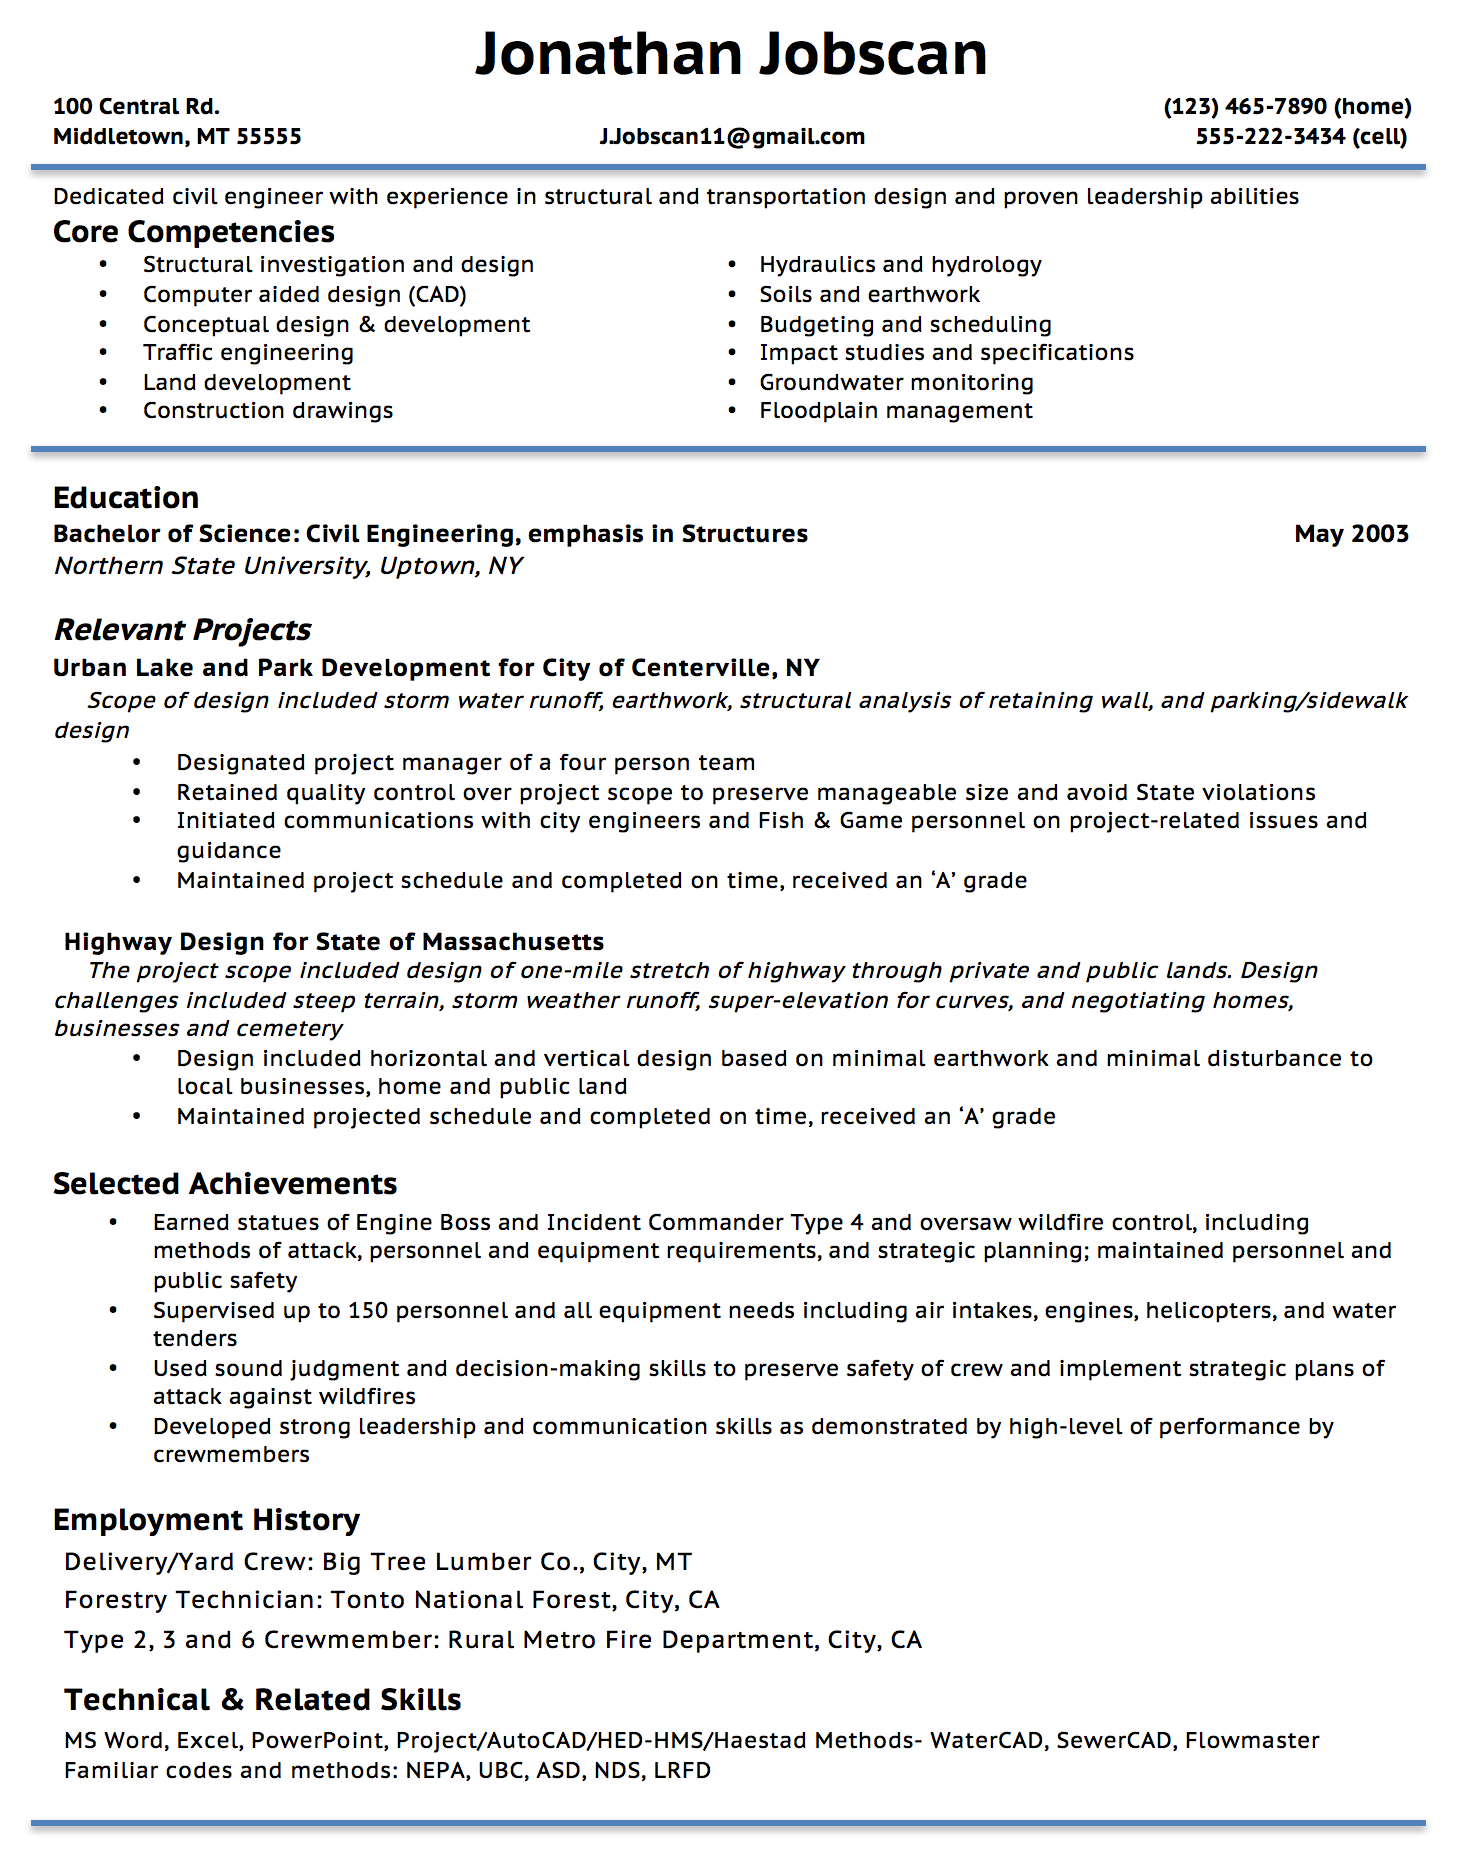 Picnictoimpeachus  Stunning Resume Writing Guide  Jobscan With Marvelous Example Of A Functional Resume Format With Alluring Computer Skill Resume Also Size Font For Resume In Addition Resume Indesign Template And Soft Skills On Resume As Well As Resume By Dorothy Parker Additionally Family Nurse Practitioner Resume From Jobscanco With Picnictoimpeachus  Marvelous Resume Writing Guide  Jobscan With Alluring Example Of A Functional Resume Format And Stunning Computer Skill Resume Also Size Font For Resume In Addition Resume Indesign Template From Jobscanco